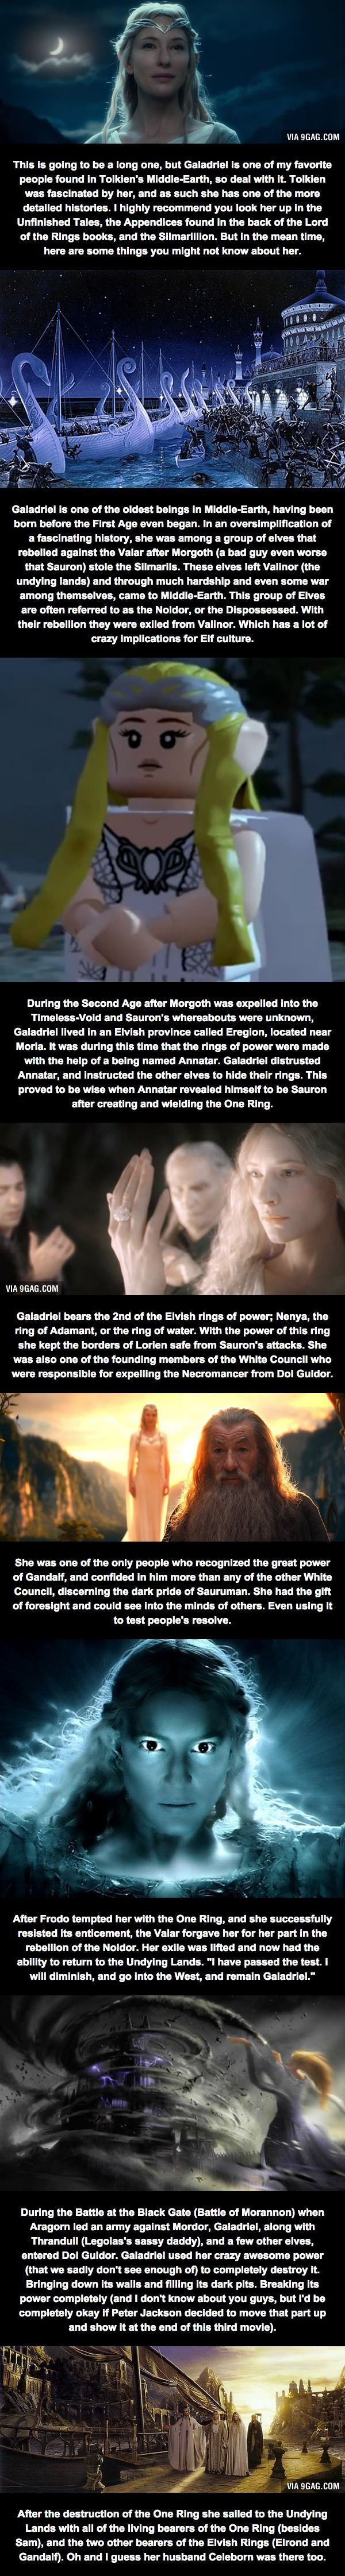 Relatively Unknown LoTR Facts (Part 3) - Galadriel the Lady of Light